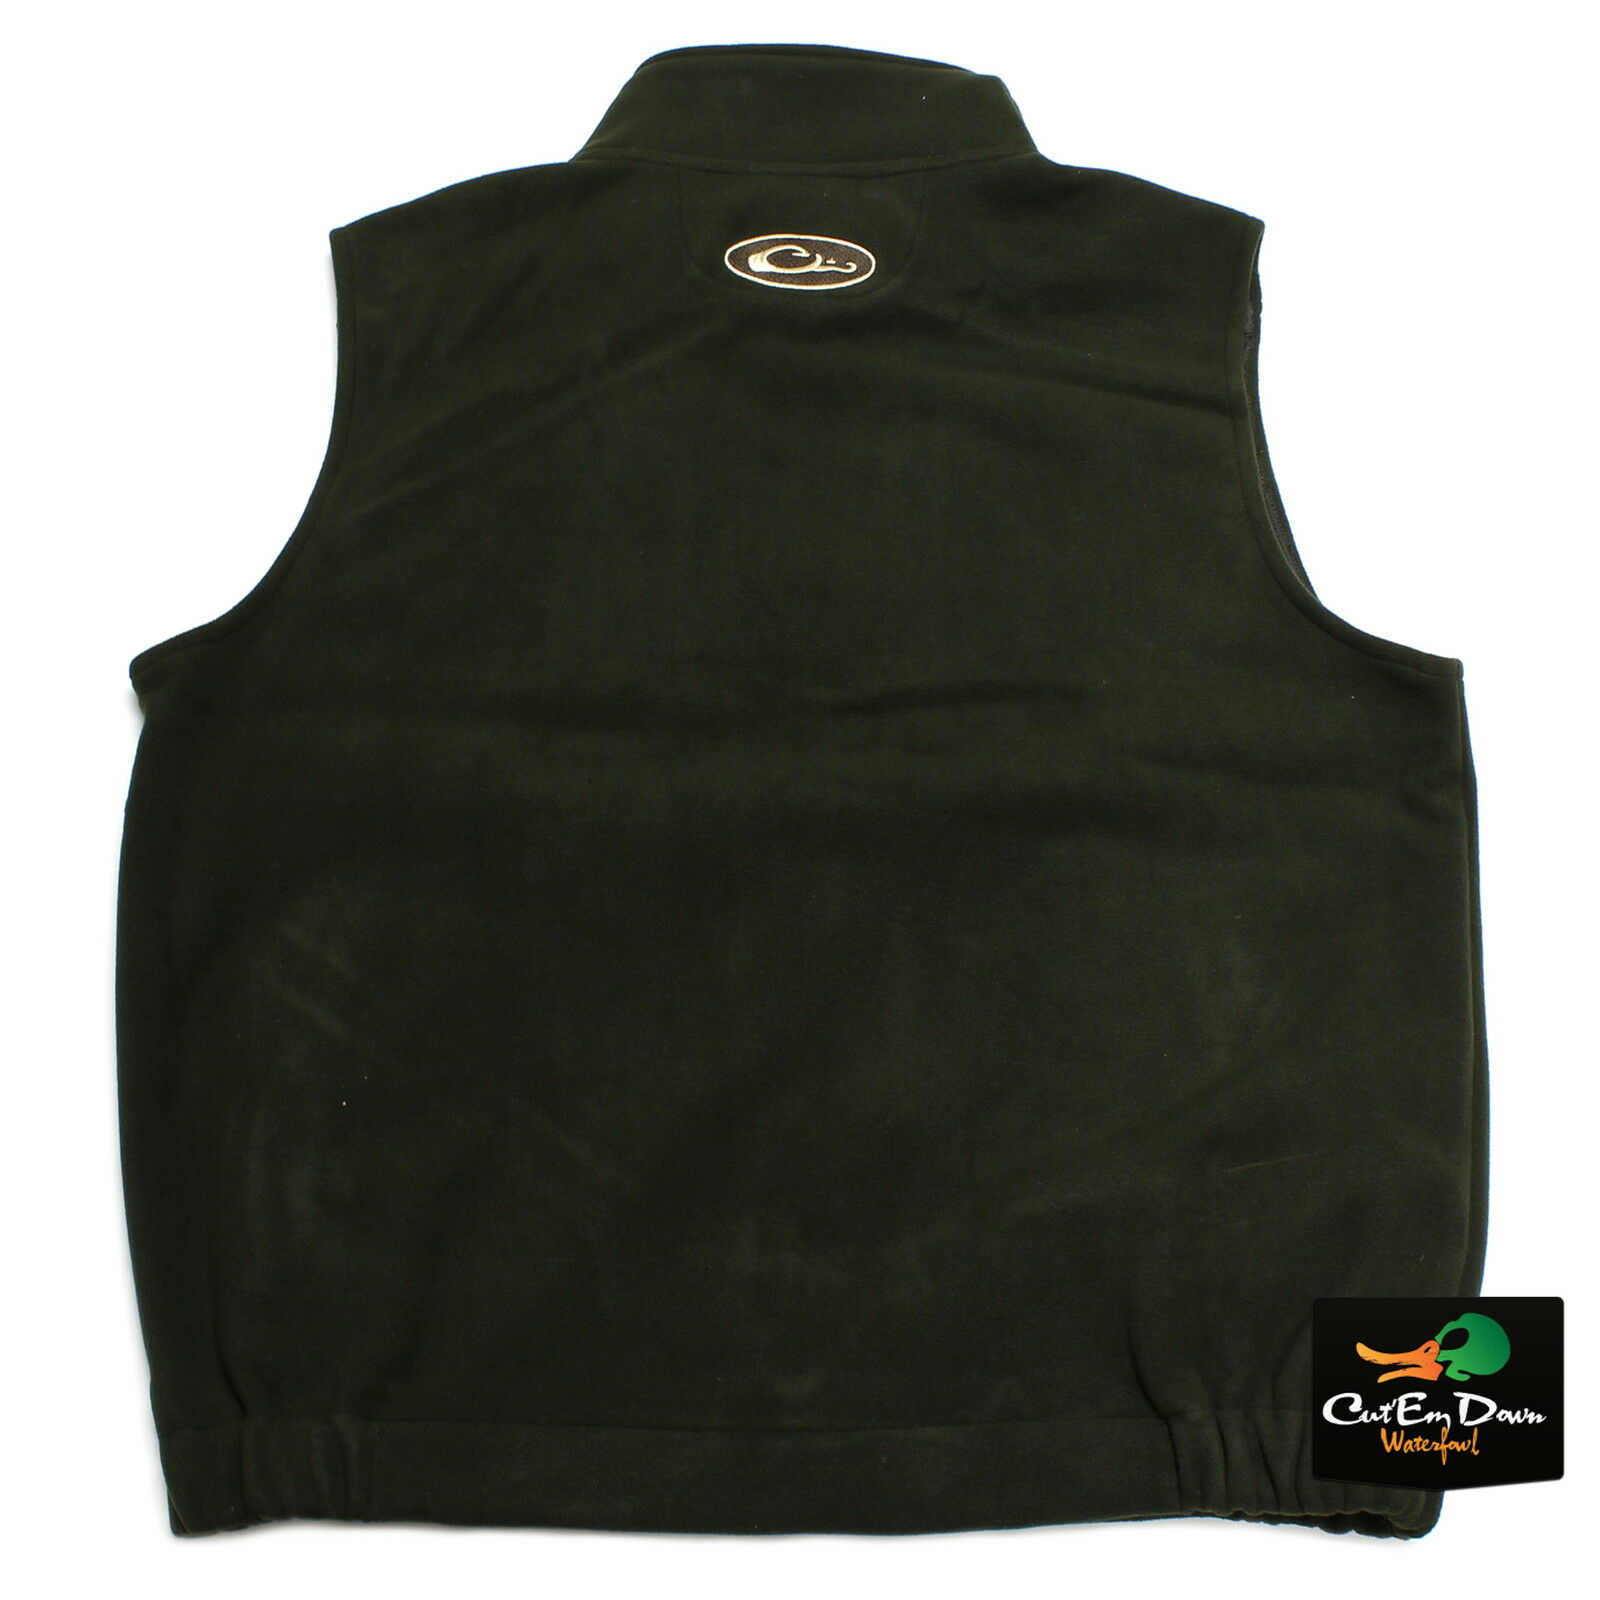 DRAKE WATERFOWL MST WINDPROOF LAYERING FLEECE VEST VEST VEST OLIVE MOSS Grün MEDIUM e07574